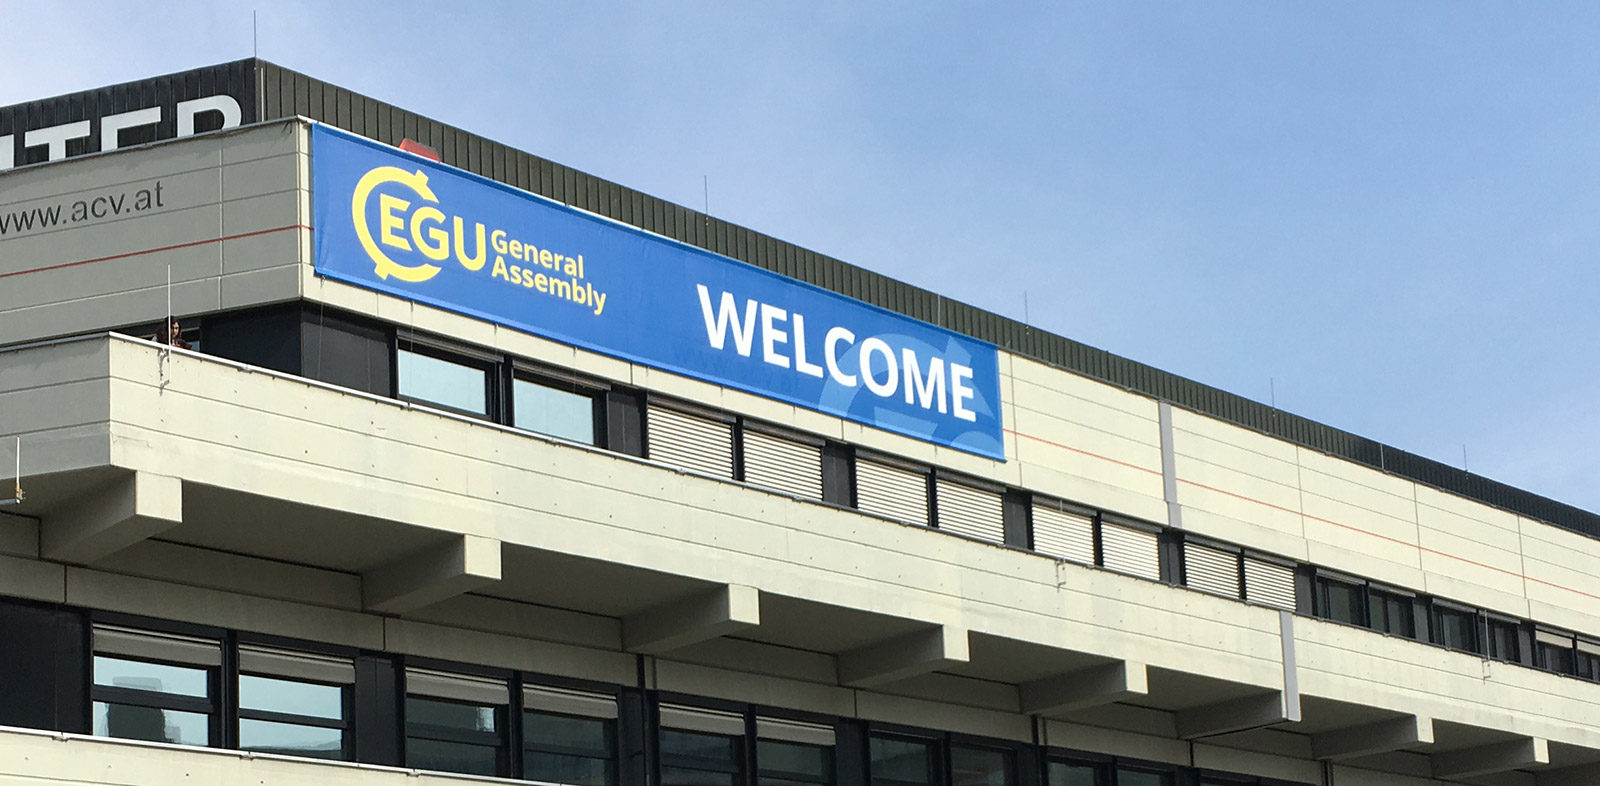 EGU welcome banner on building